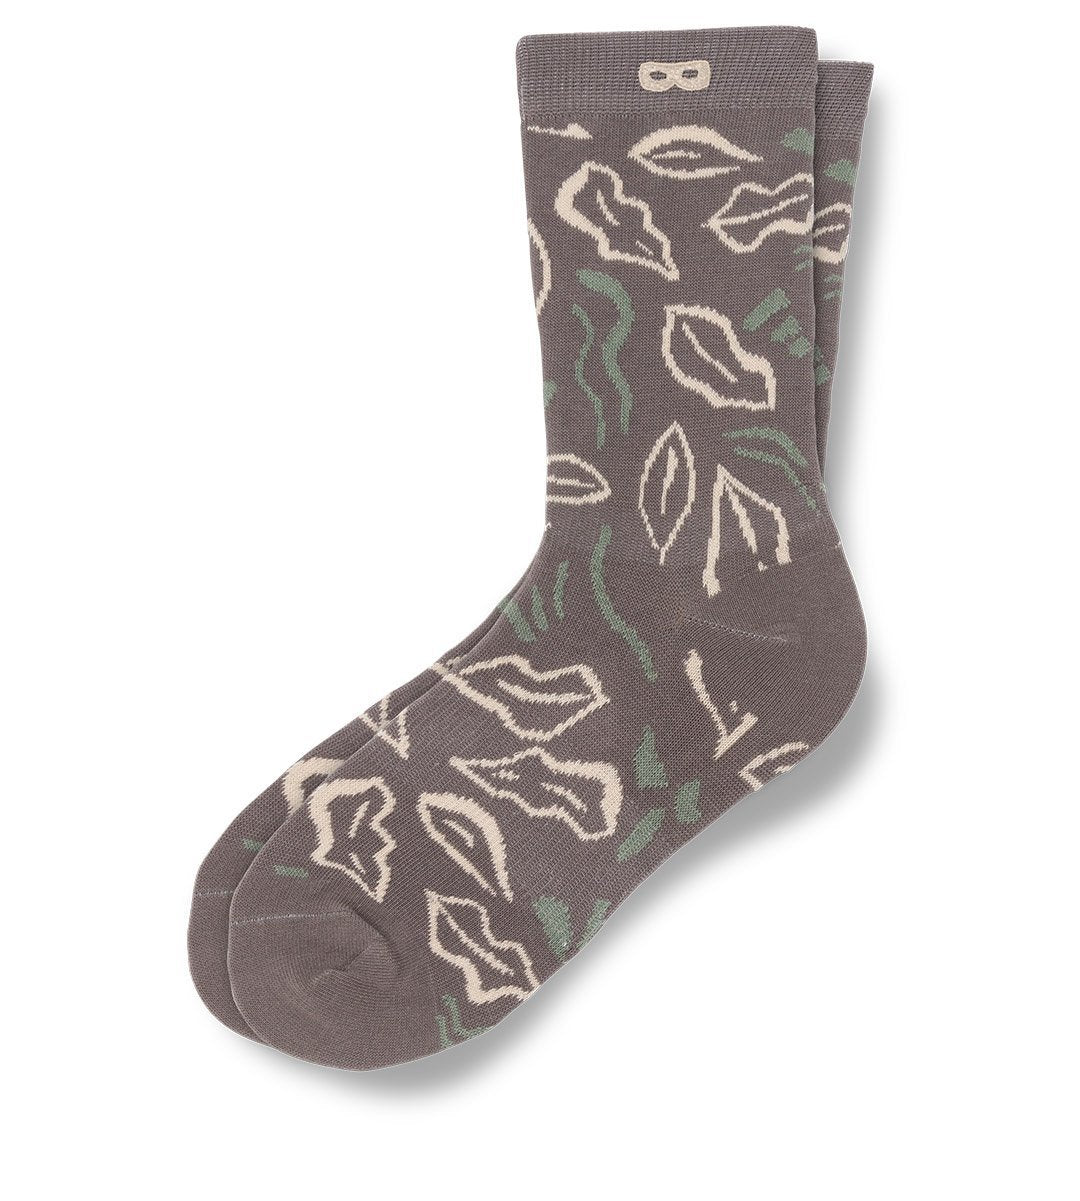 Speaks Volumes Women's Crew Socks